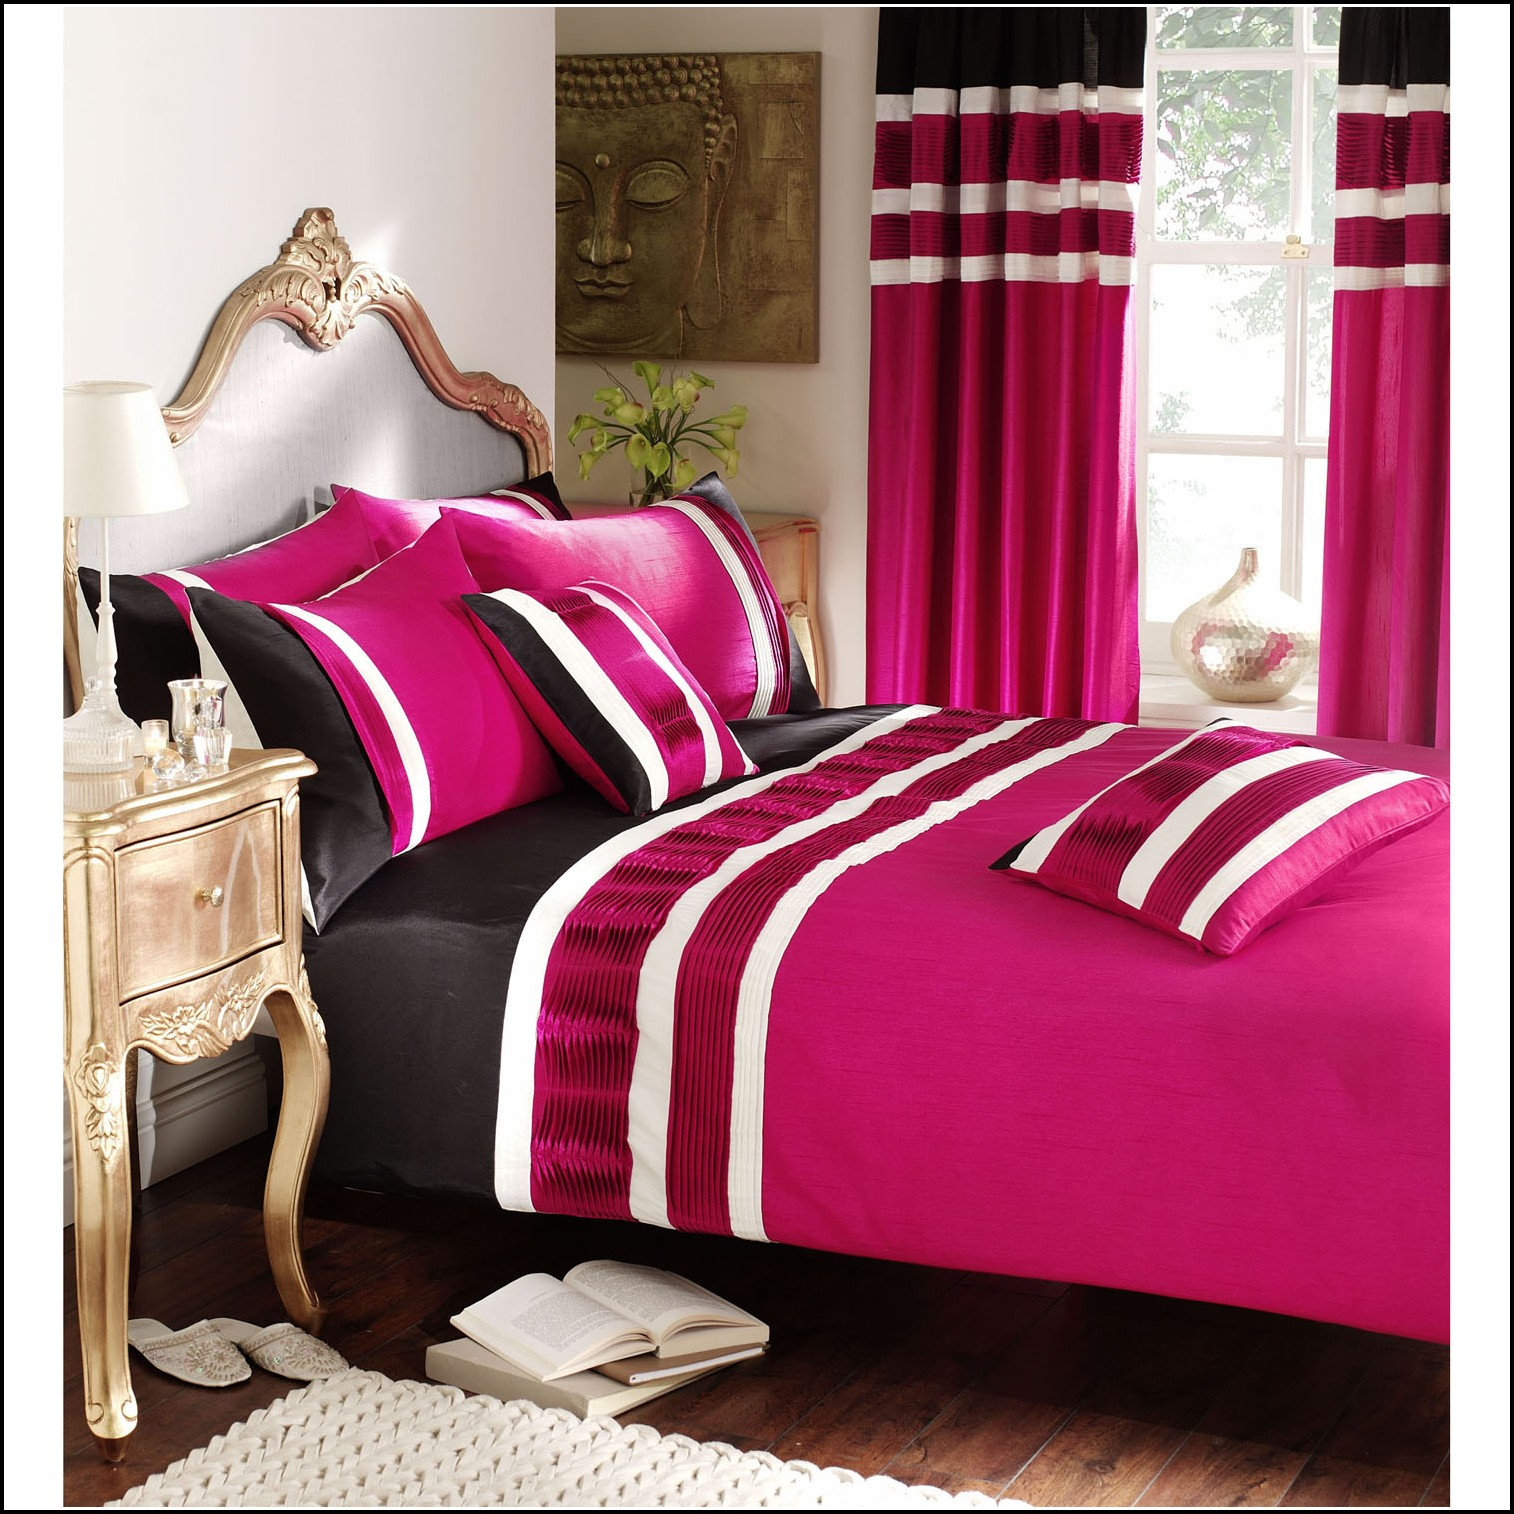 Bedding Sets With Curtains To Match